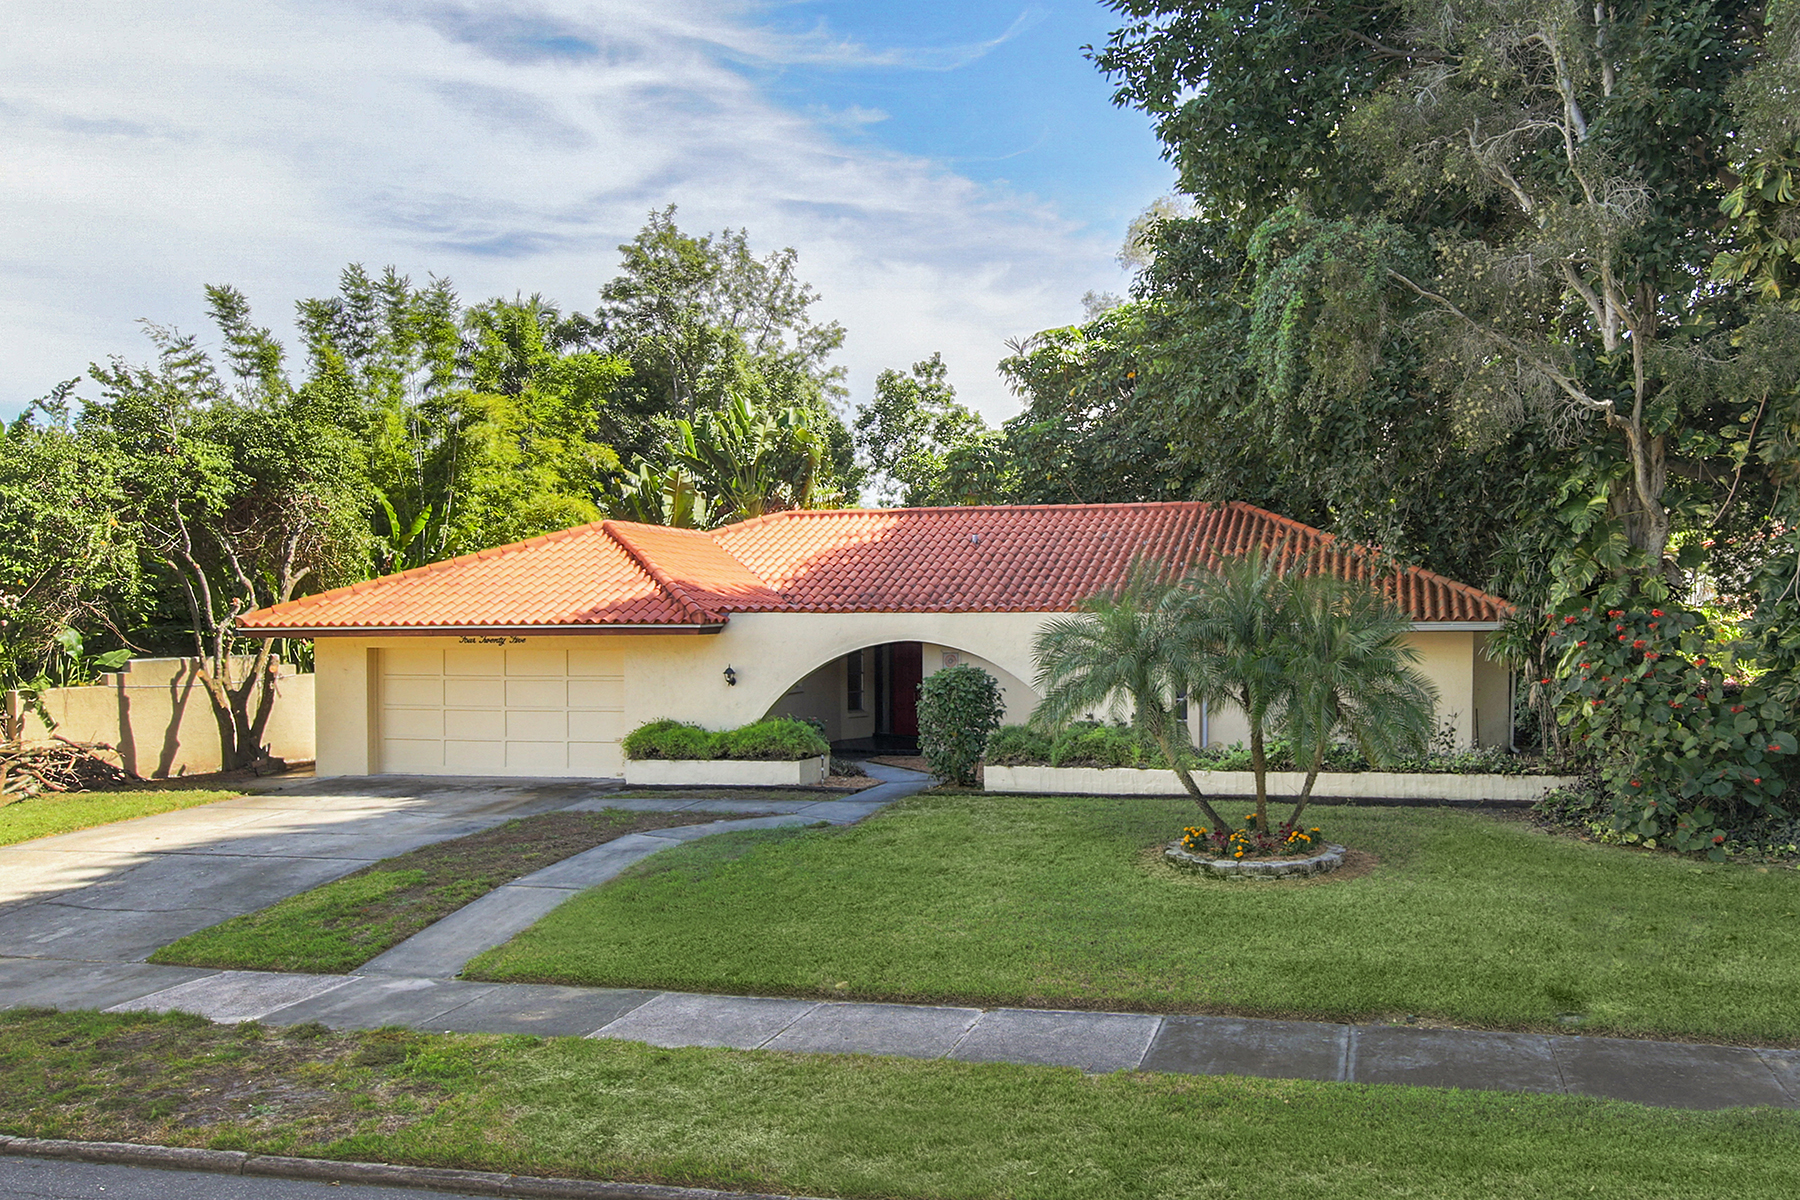 Single Family Home for Sale at VENICE ISLAND 425 Harbor Dr S Venice, Florida, 34285 United States